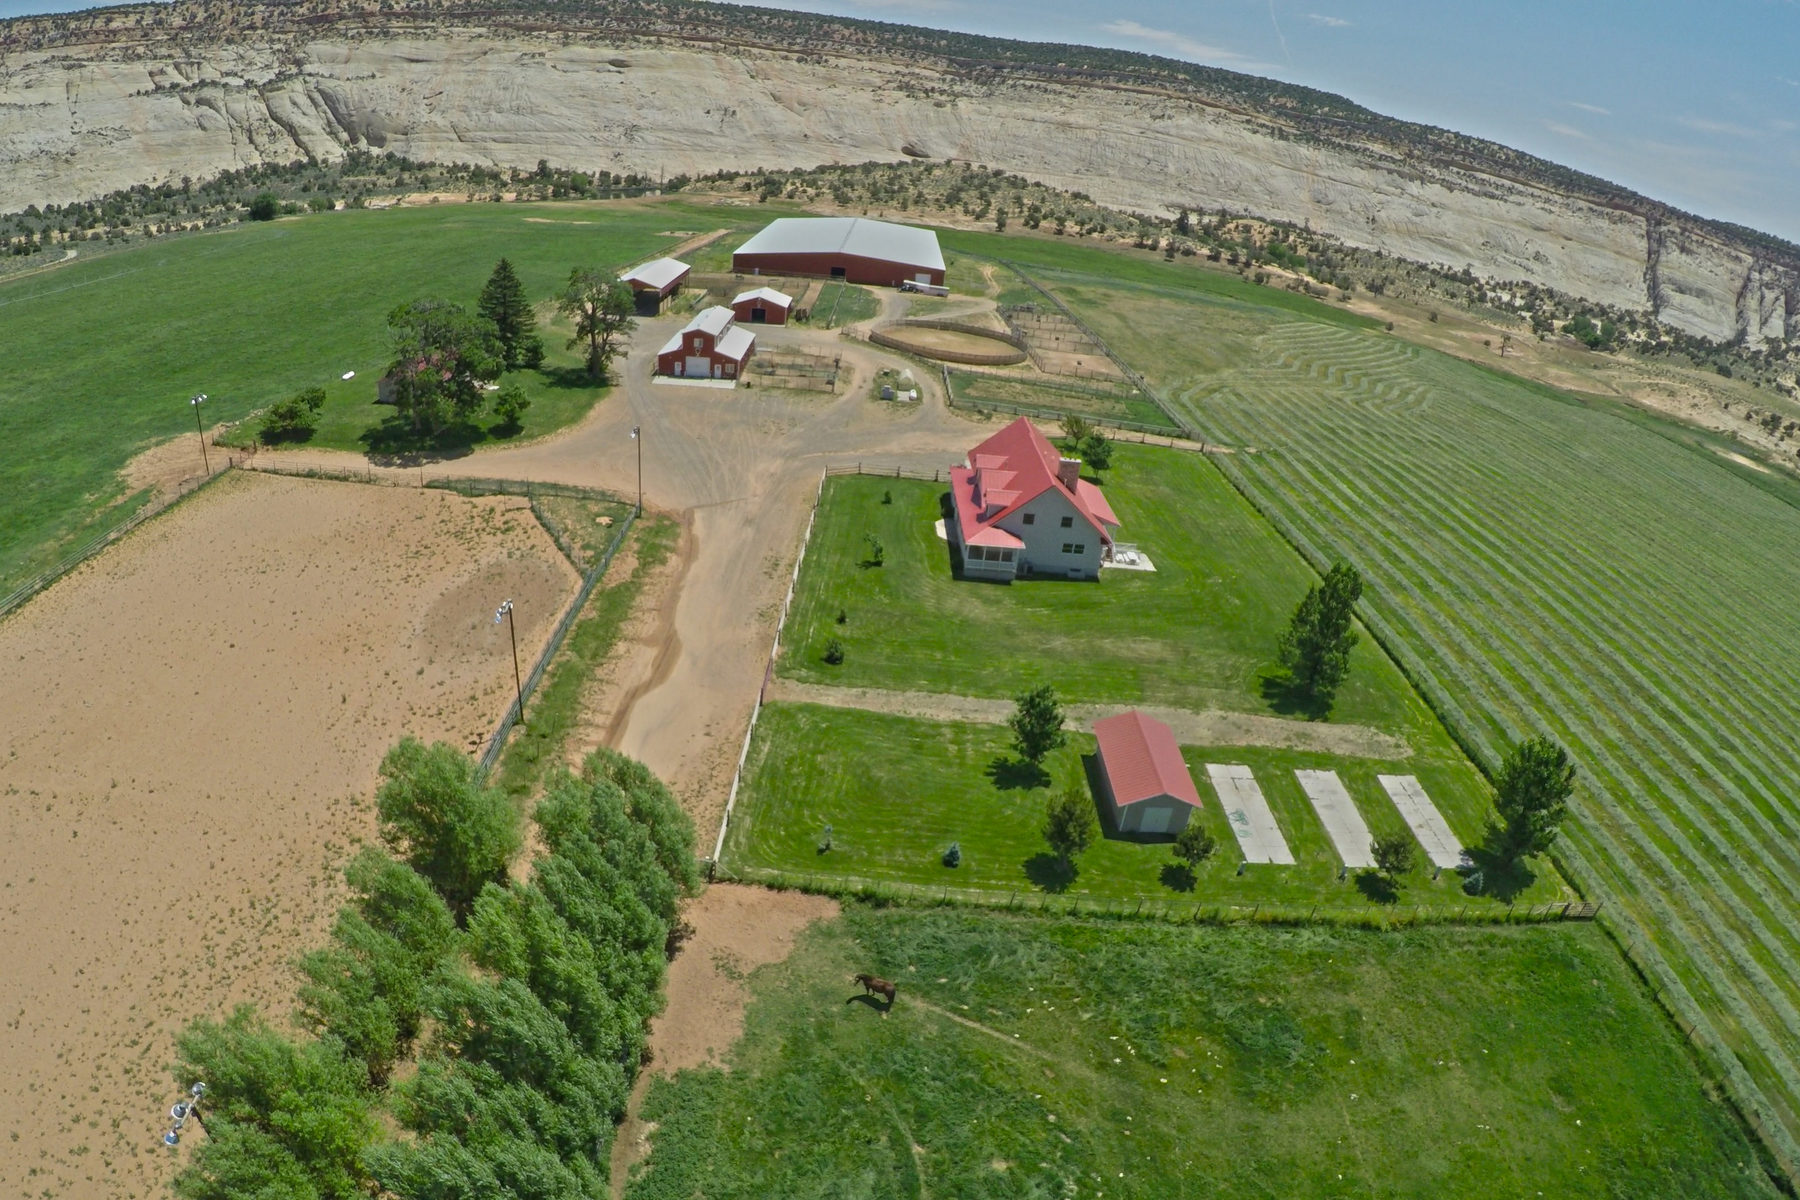 Farm / Ranch / Plantation for Sale at An Intensely Private & Deeply Inspirational One of a Kind Ranch - Land Holding 2405 Lower Boulder Rd Boulder, Utah, 84716 United States